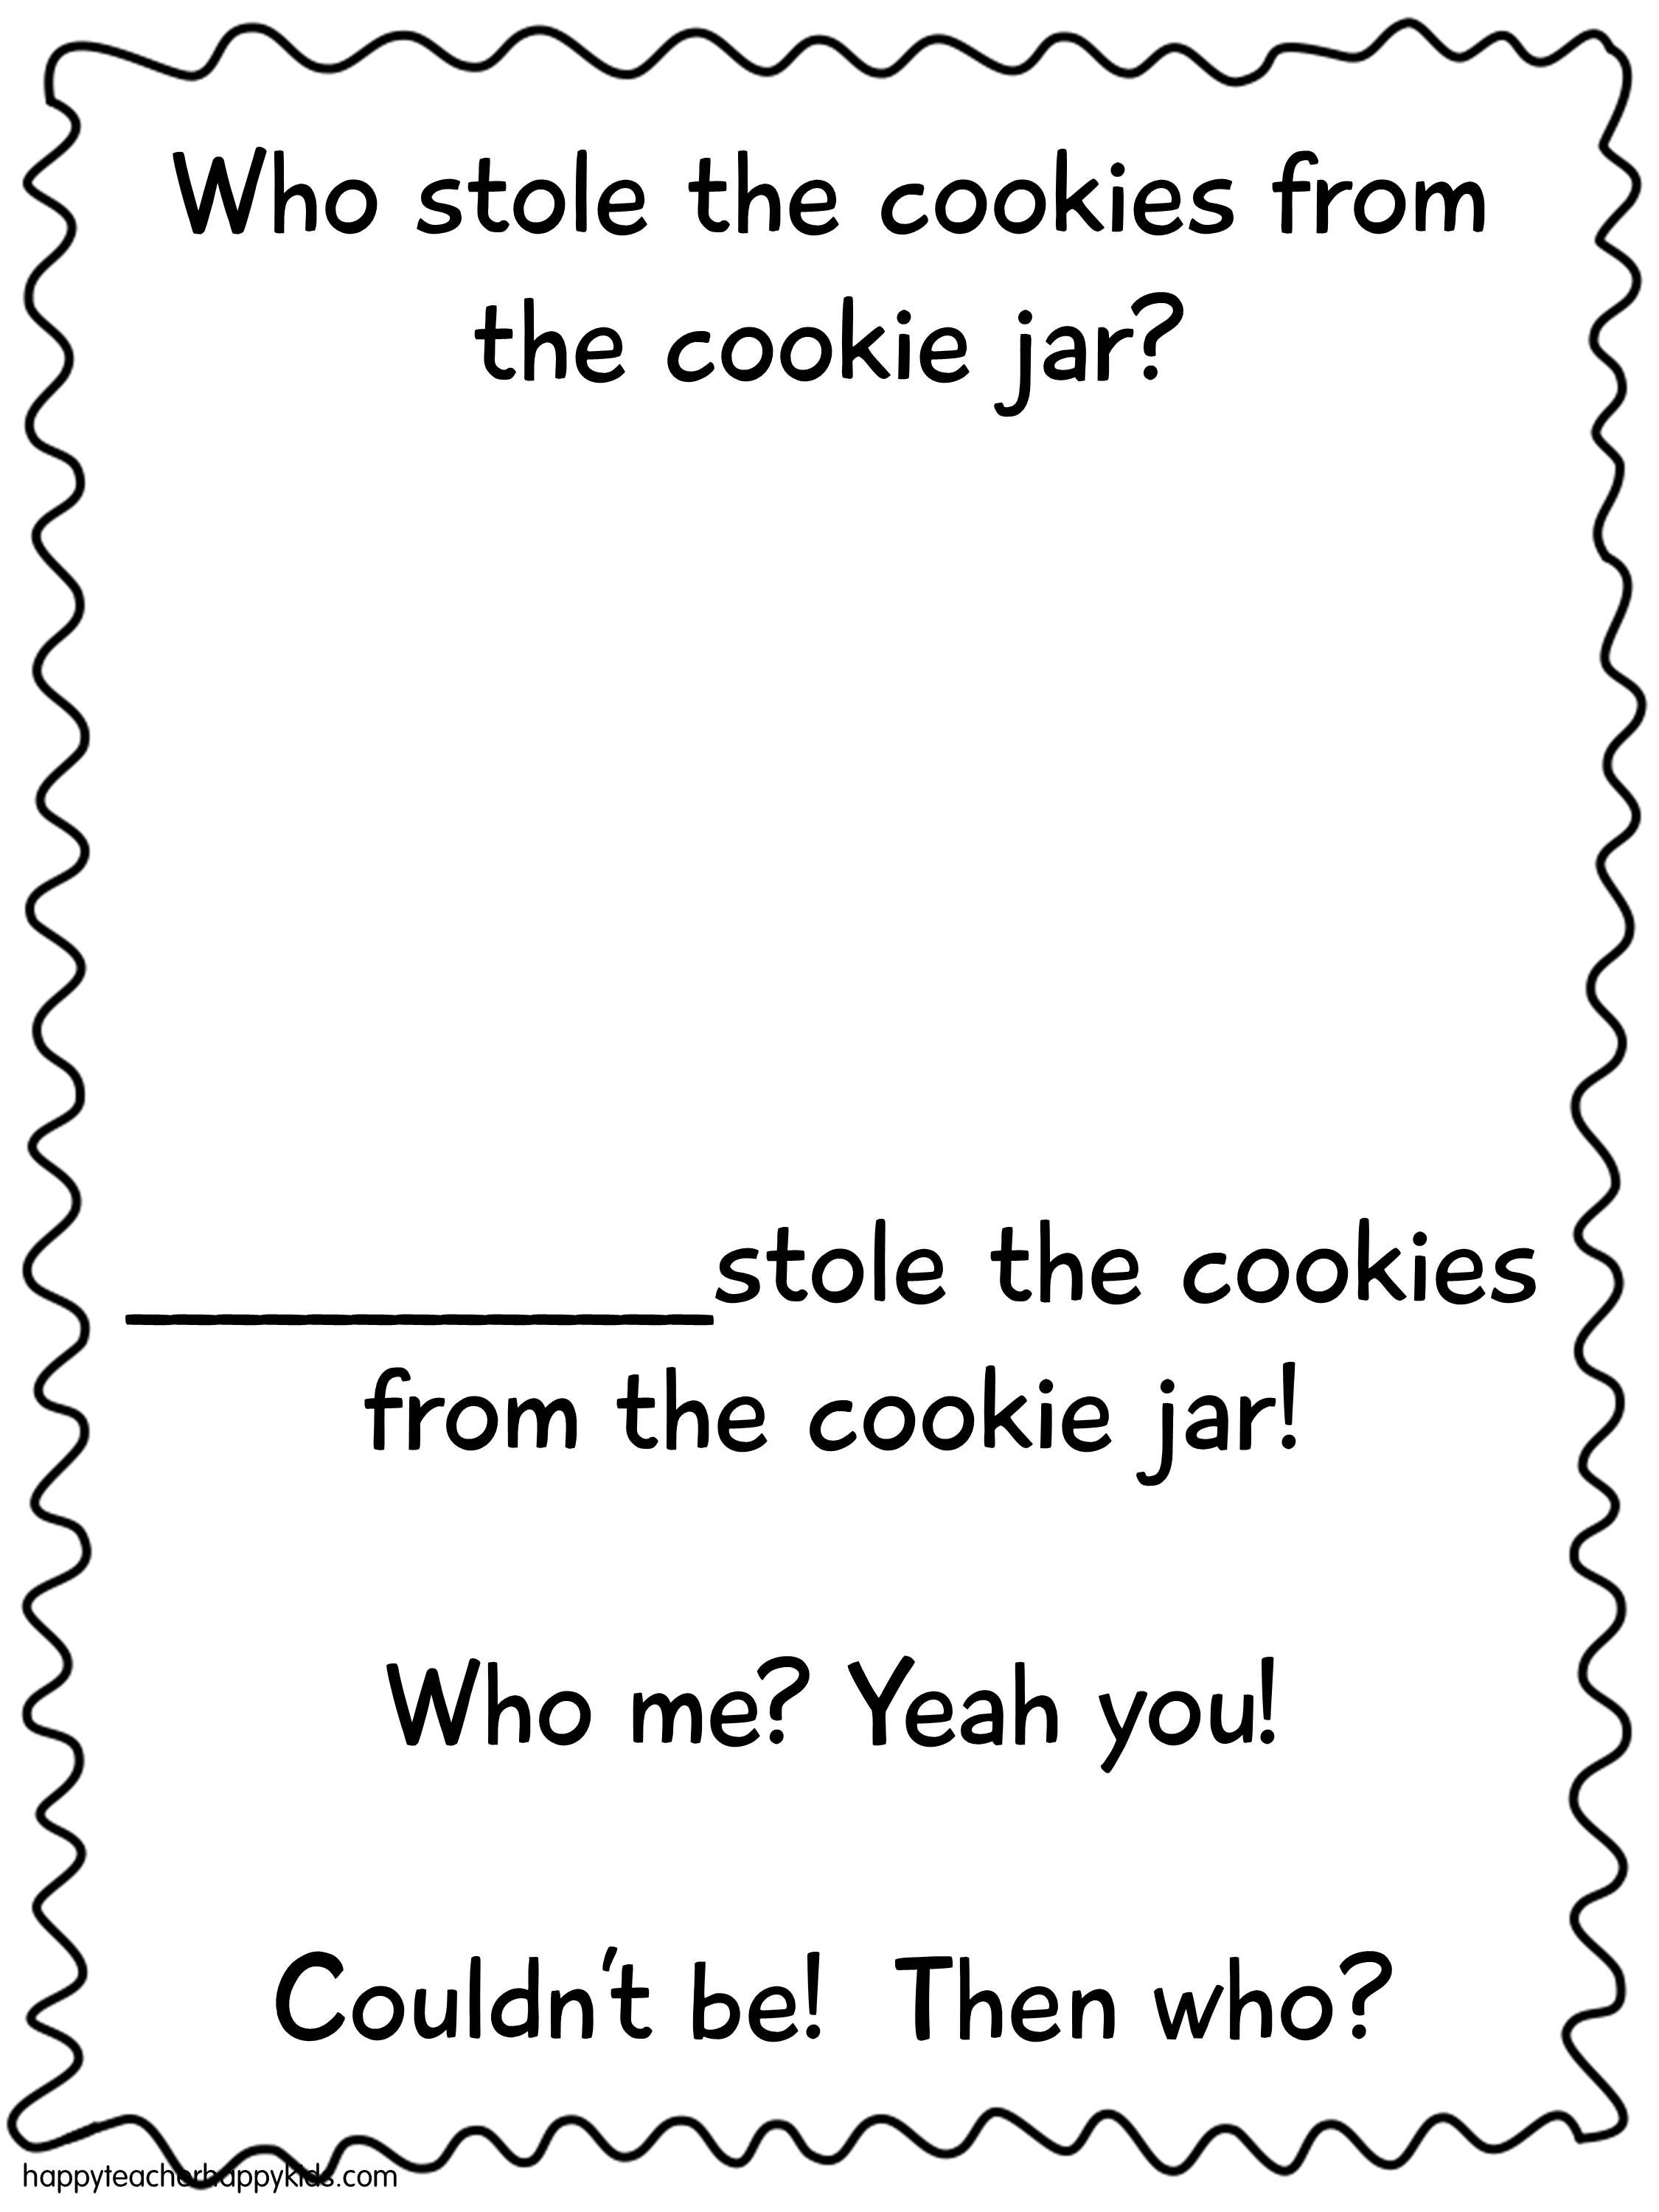 Who Stole The Cookie From The Cookie Jar Lyrics Classy Back To School Smart Cookies  Pinterest  Cookie Jars Jar And Books